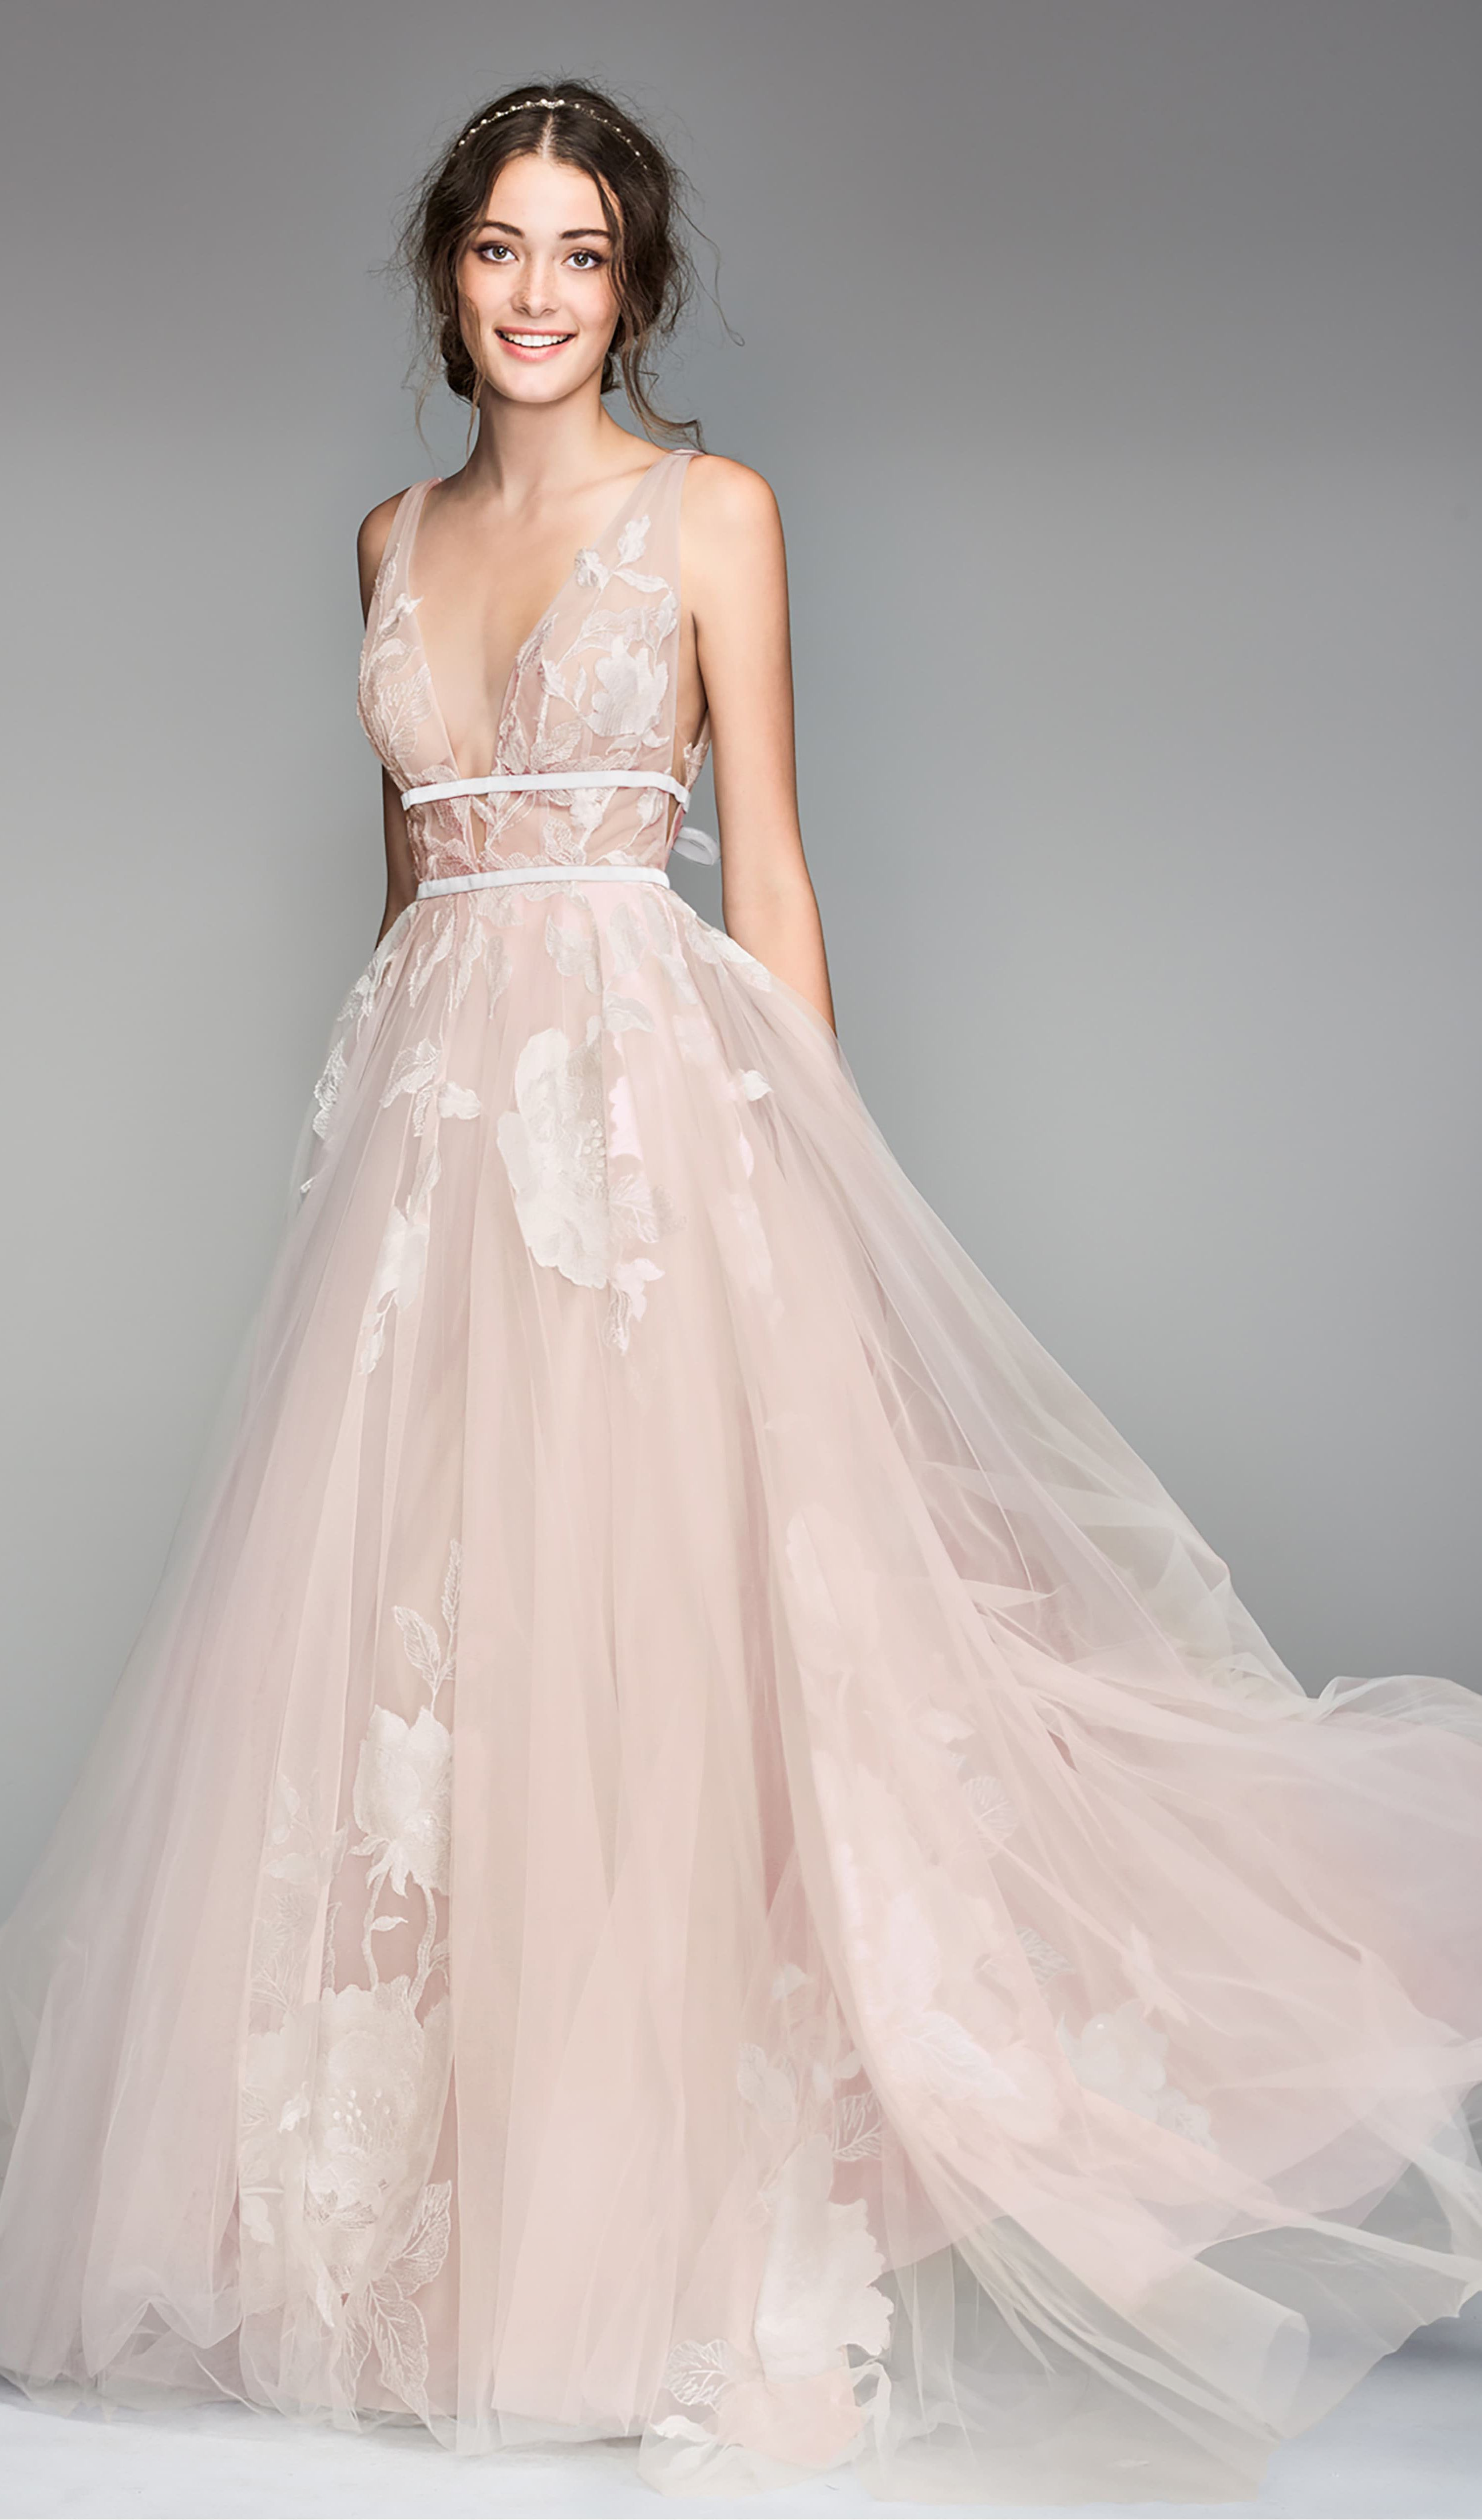 35 Colorful Wedding Dresses For The Modern 2020 Bride